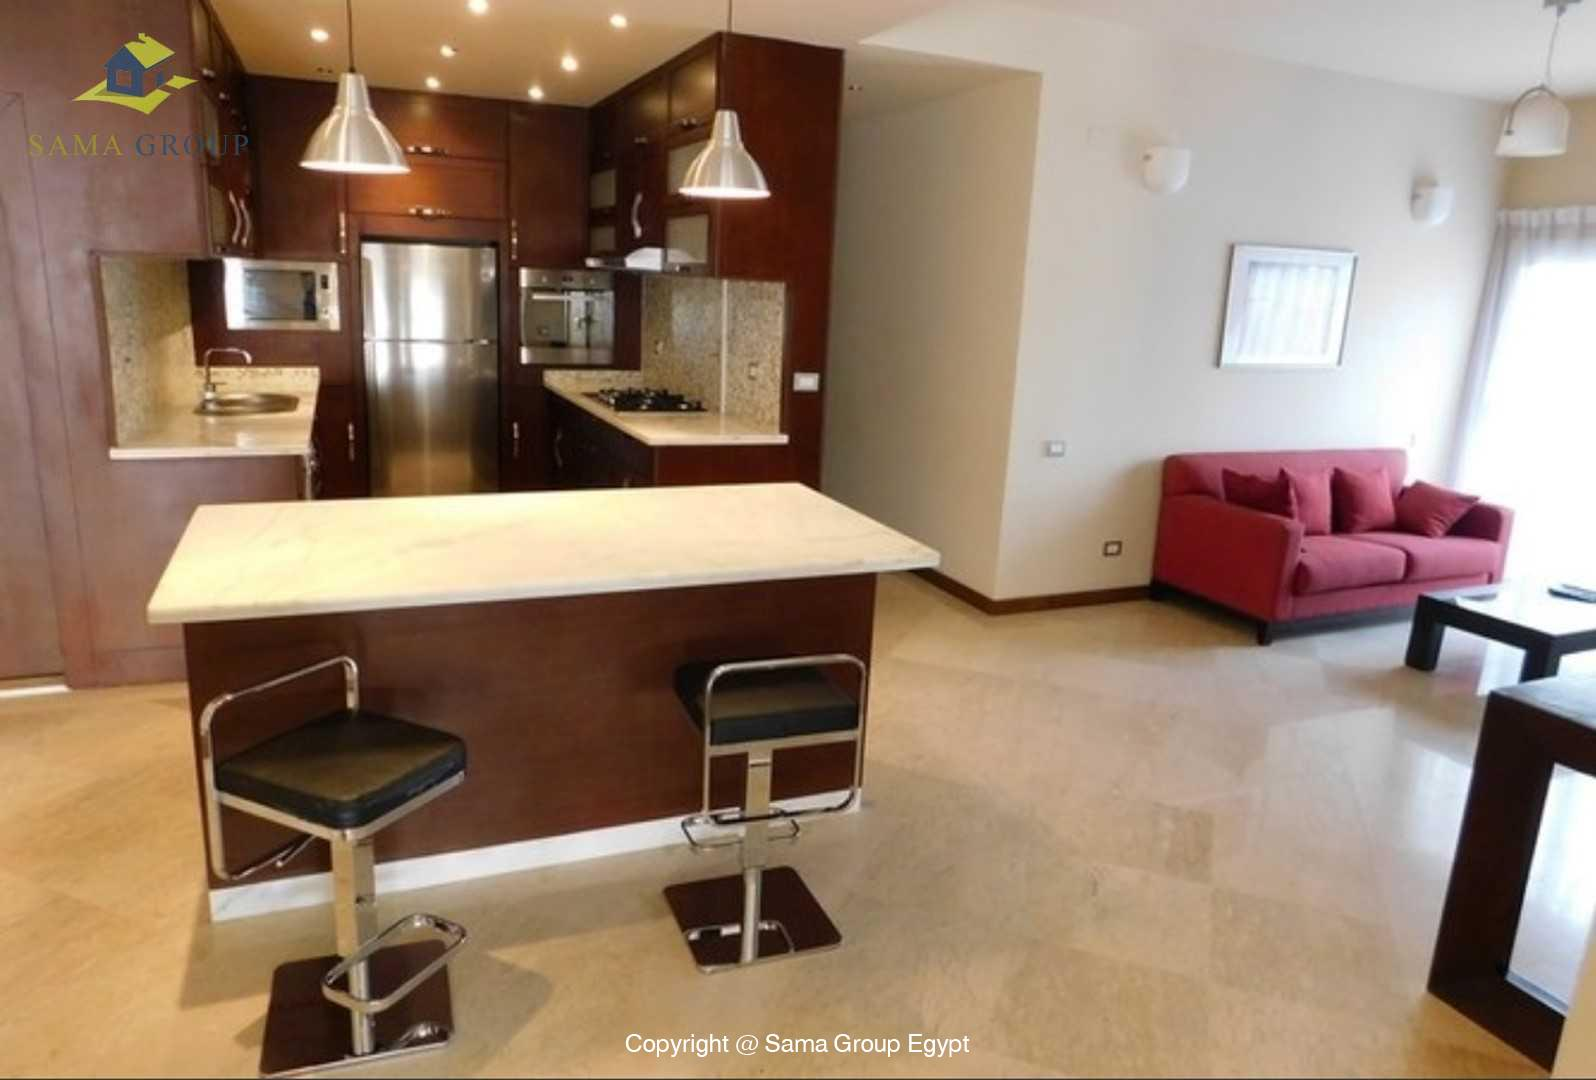 Brand New Modern Apartment For Rent In Maadi,Modern Furnished,Apartment NO #2